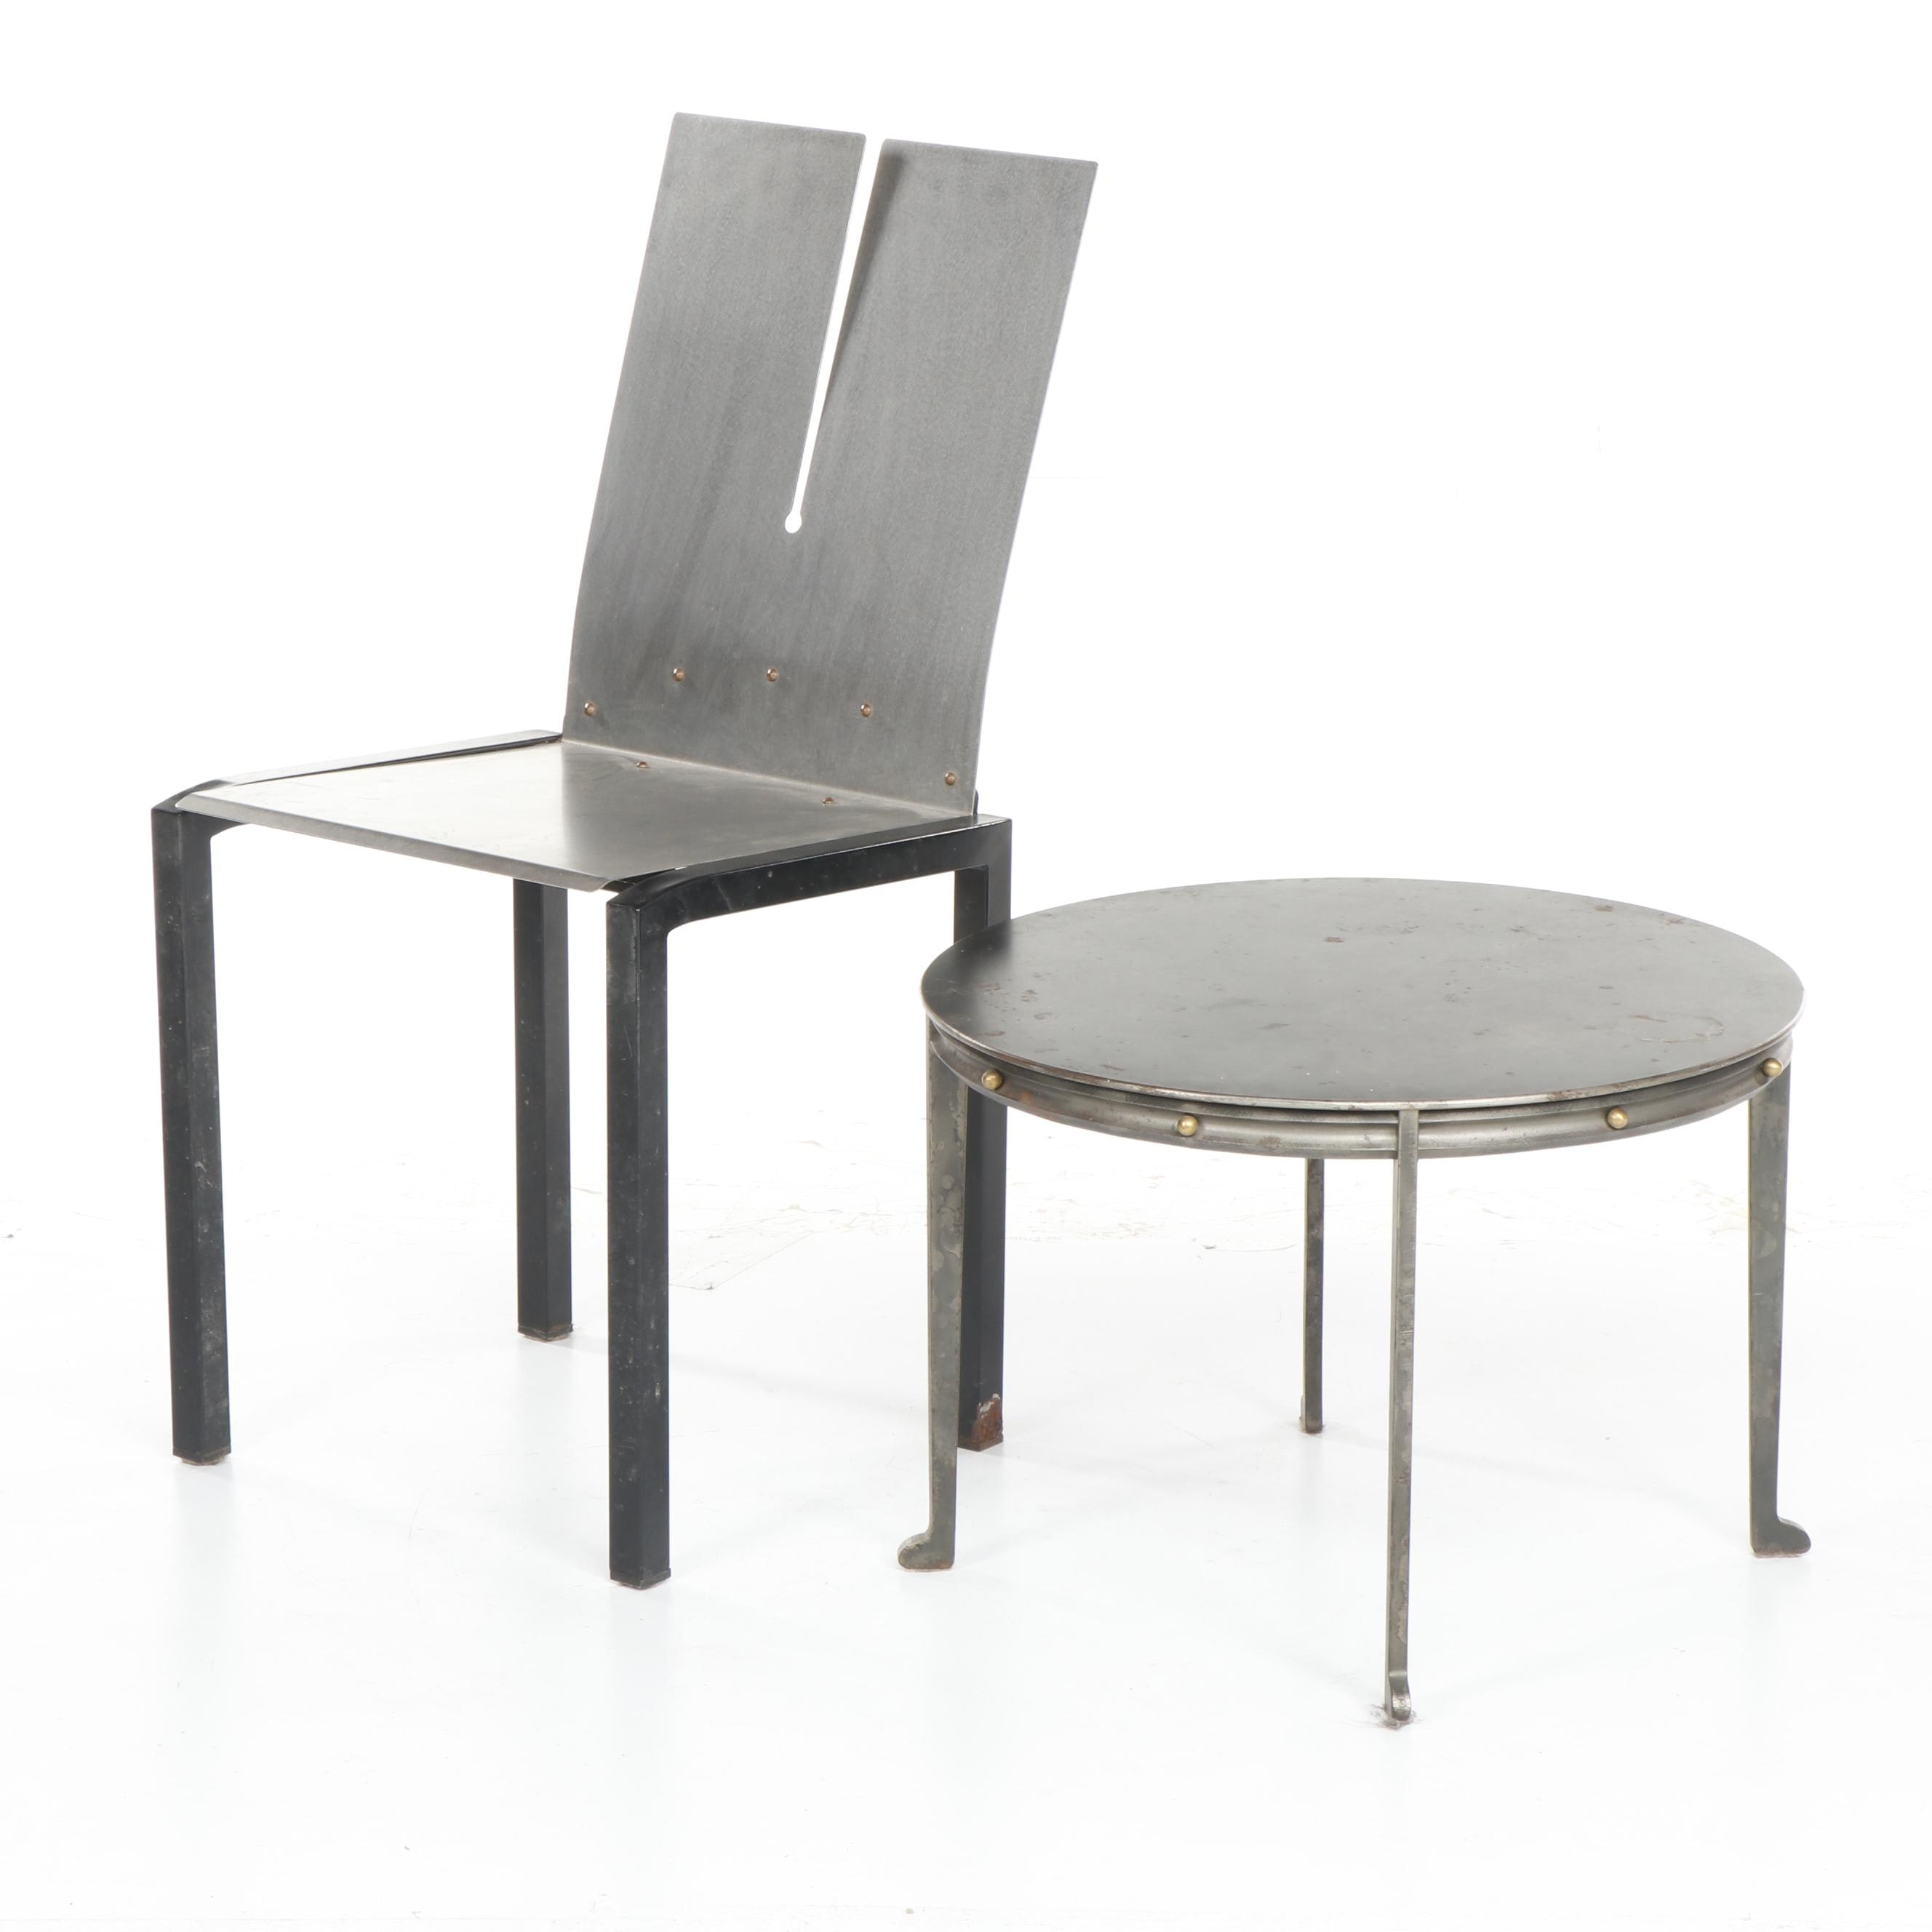 Modern Style Stainless Steel chair and Iron Accent Table with Brass Accents